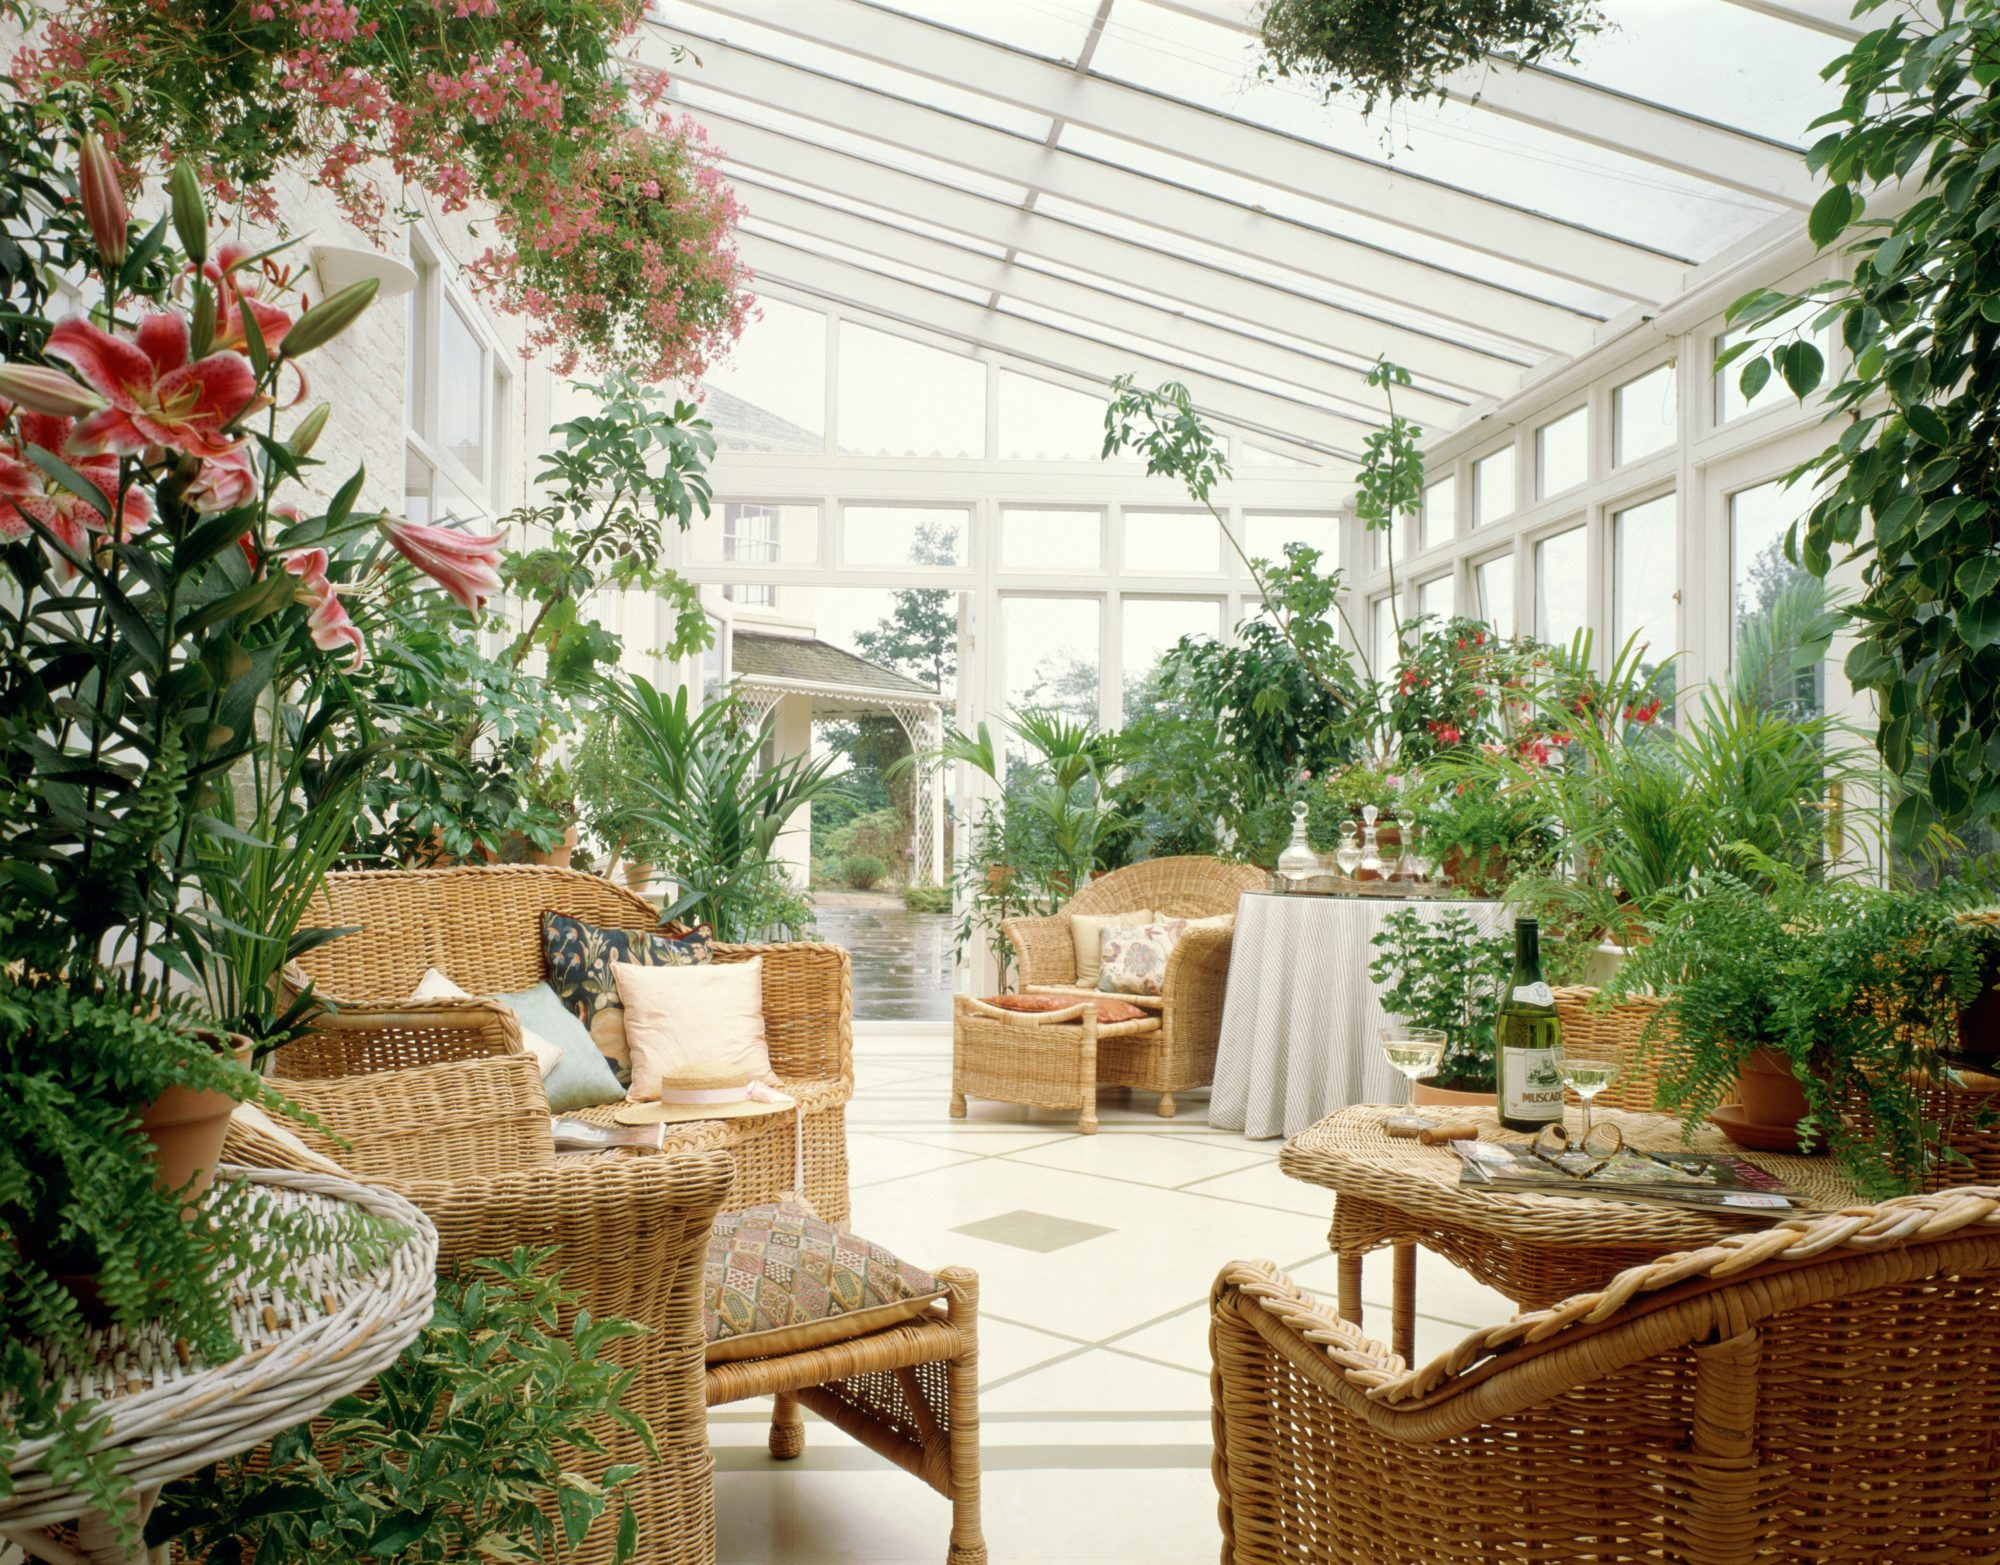 Florida Room With Plants